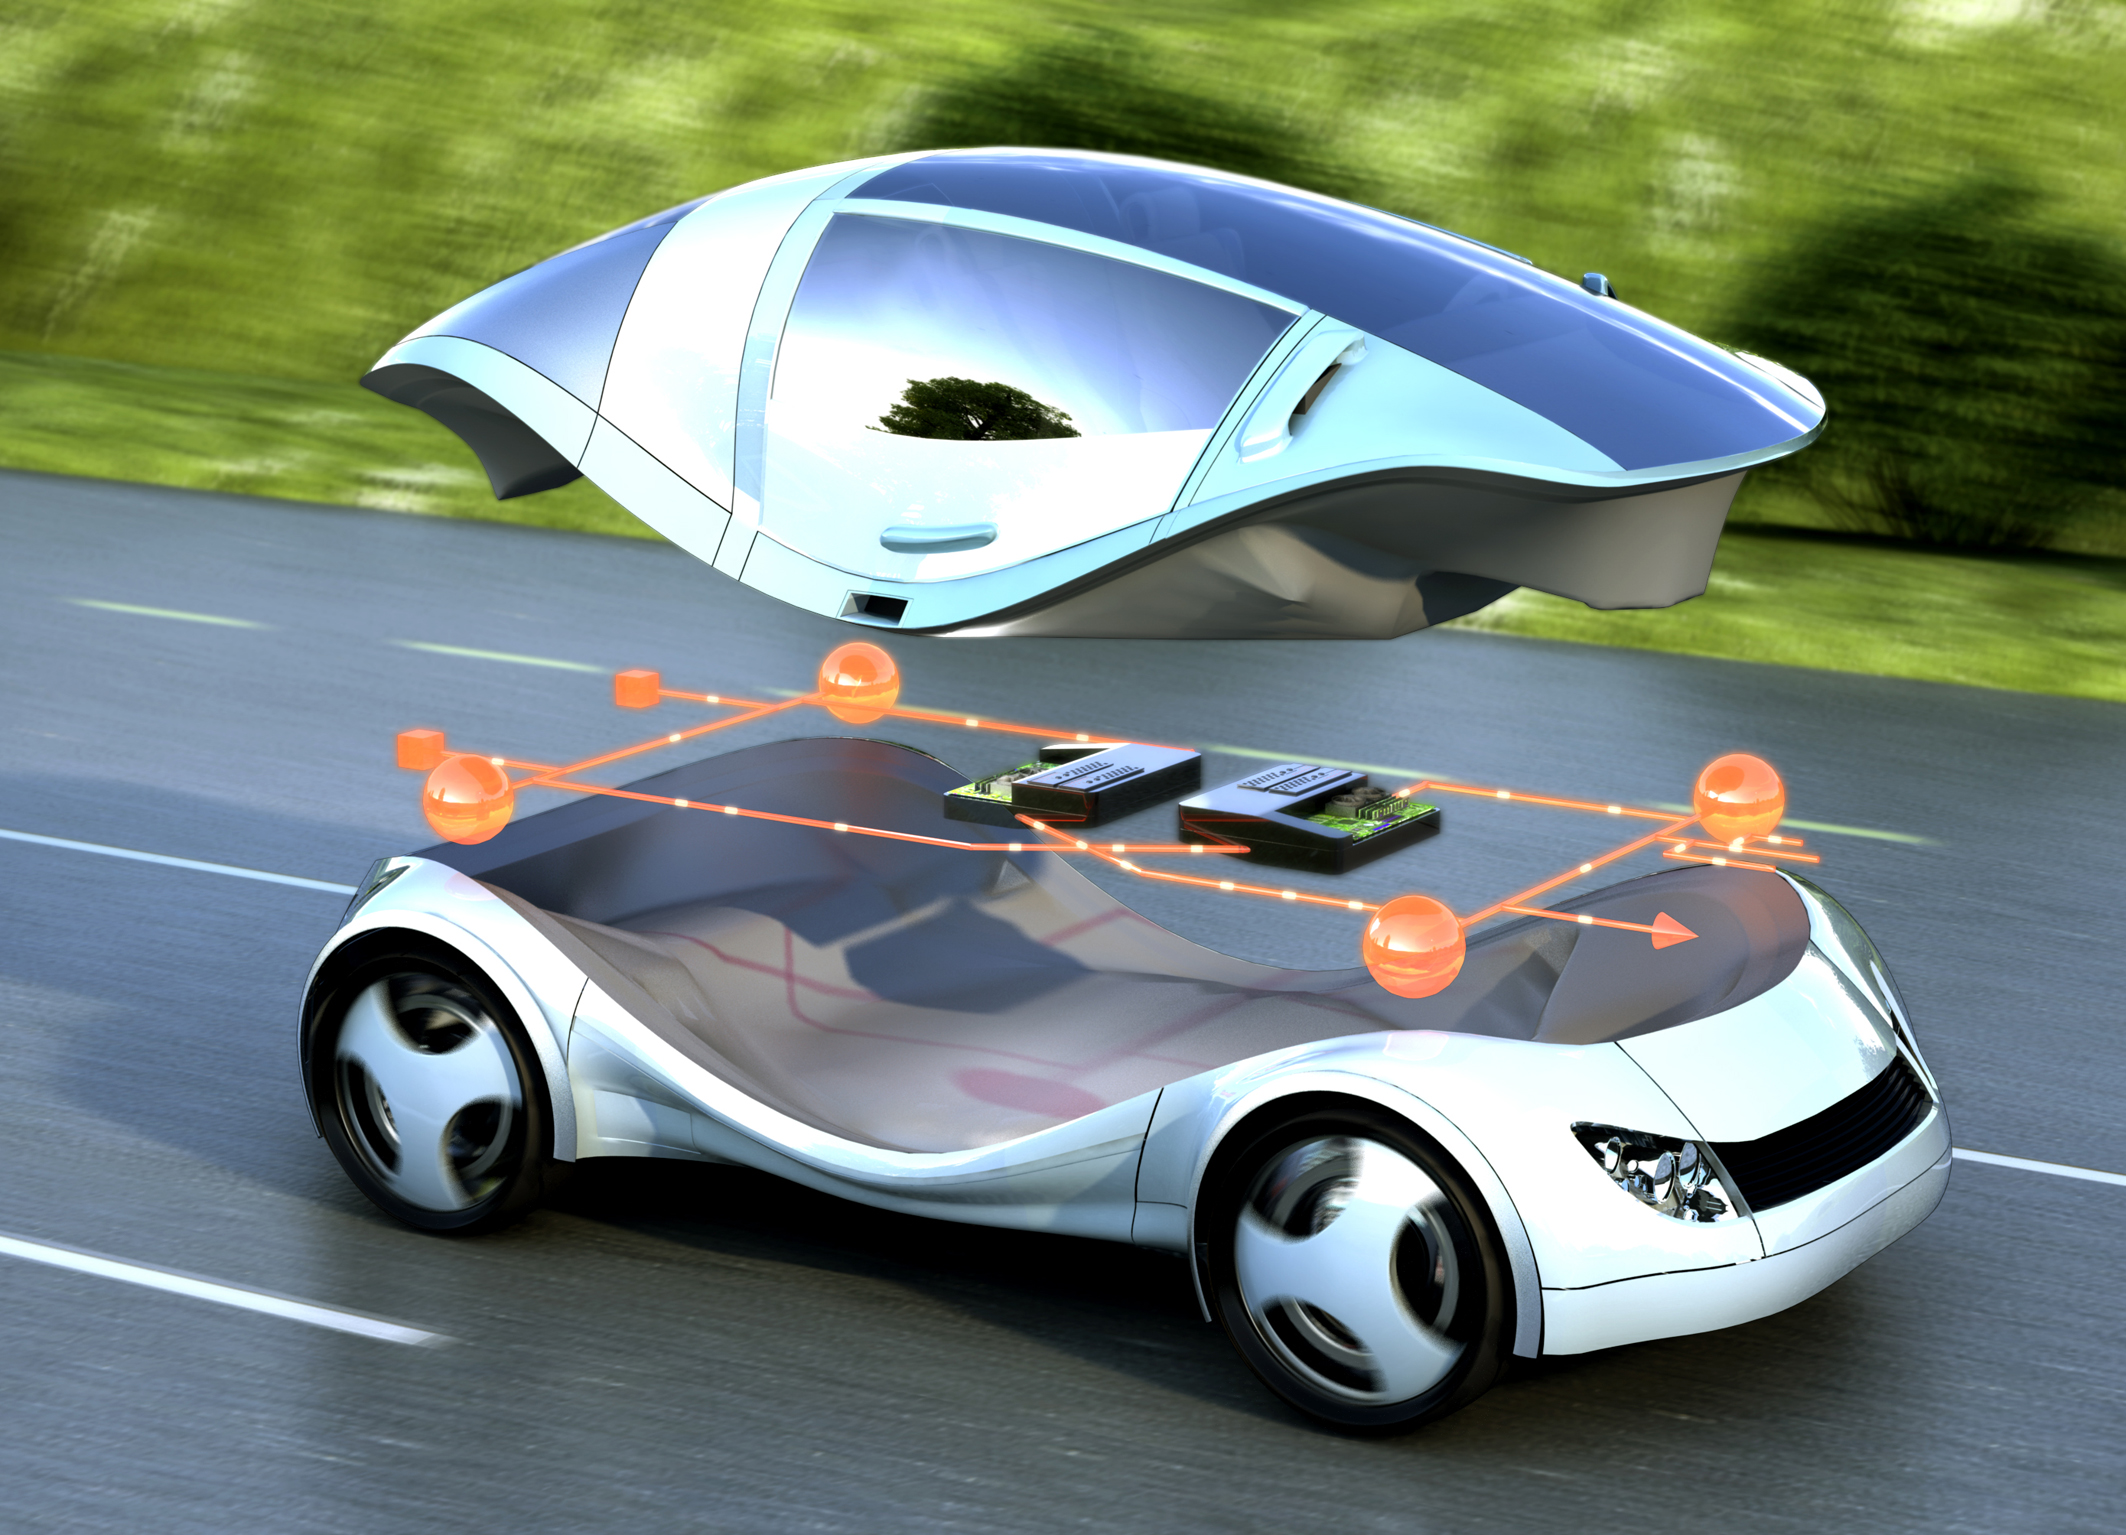 Cars Of The Future Integrated Software Architecture For The Car Of The Future